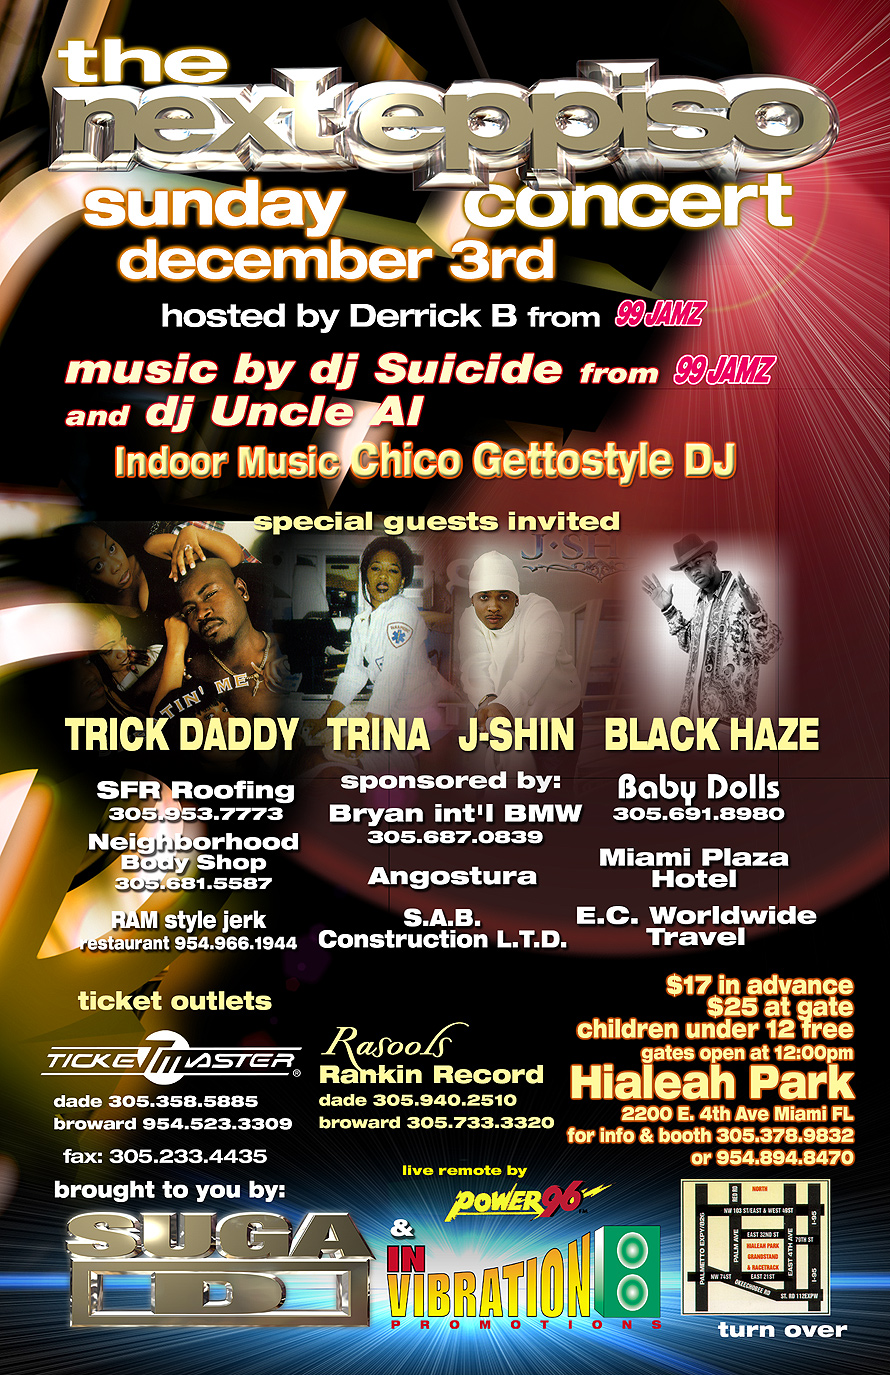 The Next Eppiso Concert at Hialeah Park